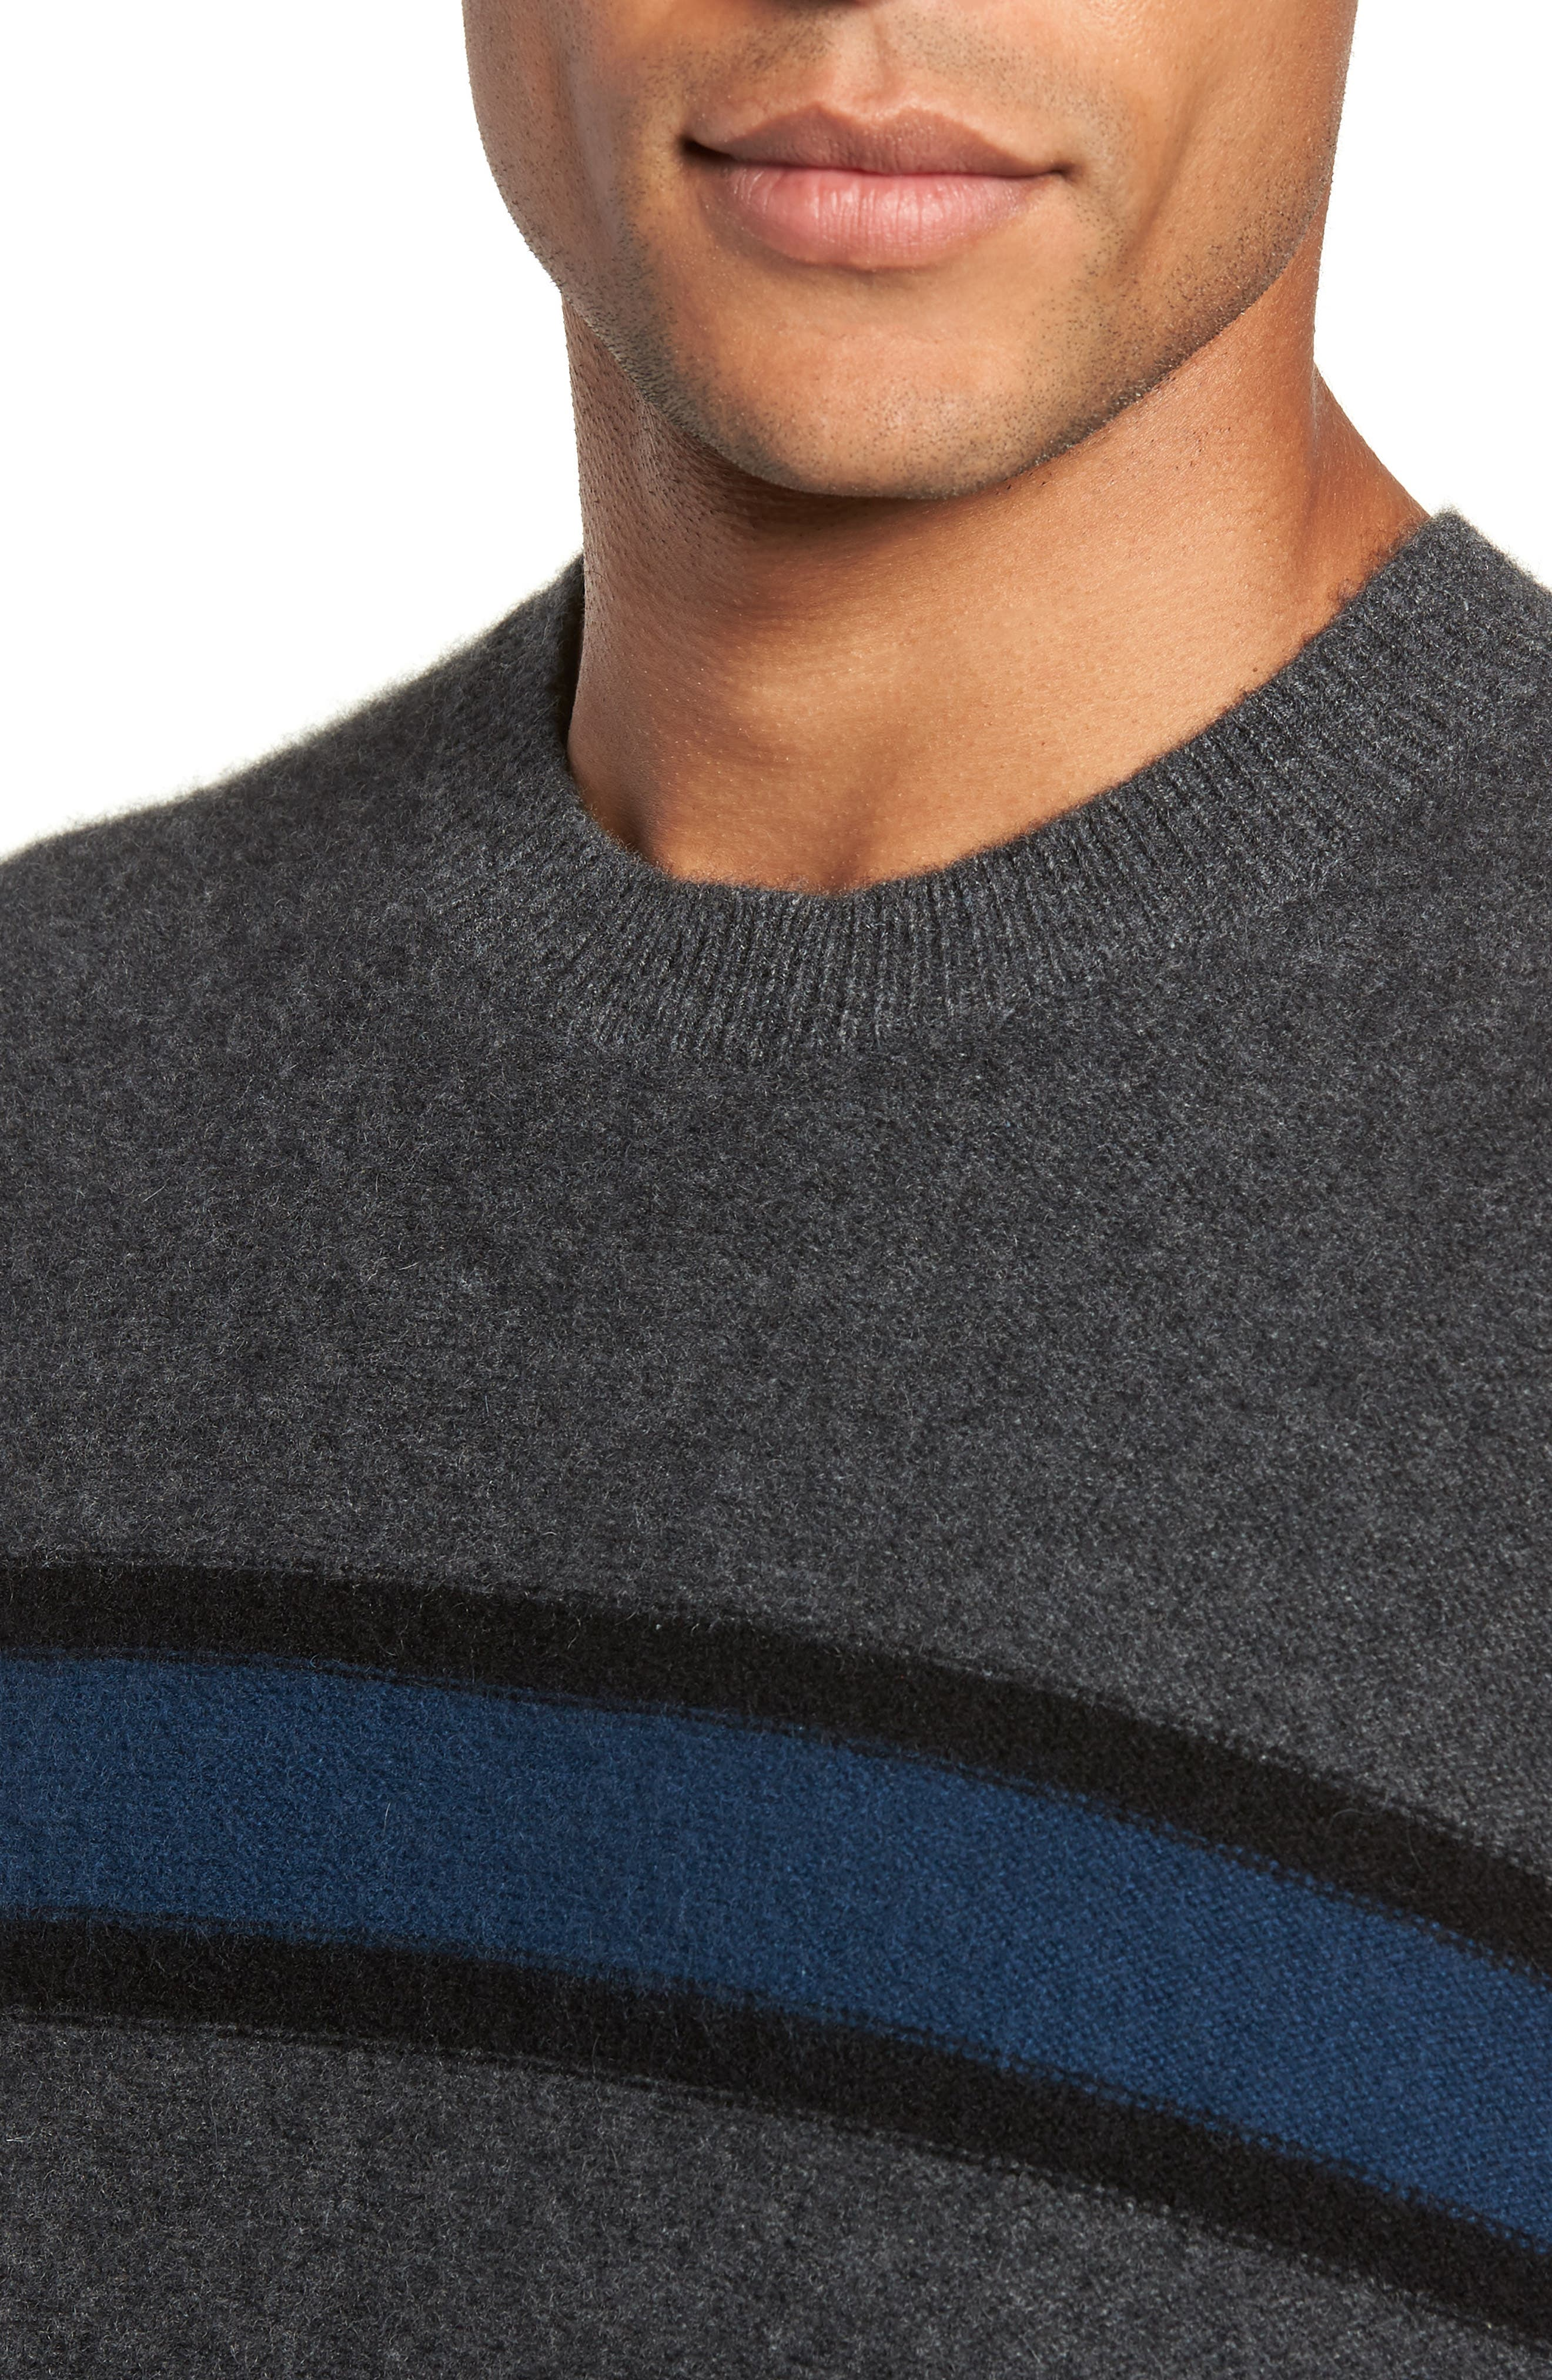 Regular Fit Stripe Cashmere Sweater,                             Alternate thumbnail 4, color,                             DARK HEATHER GREY/BLUE